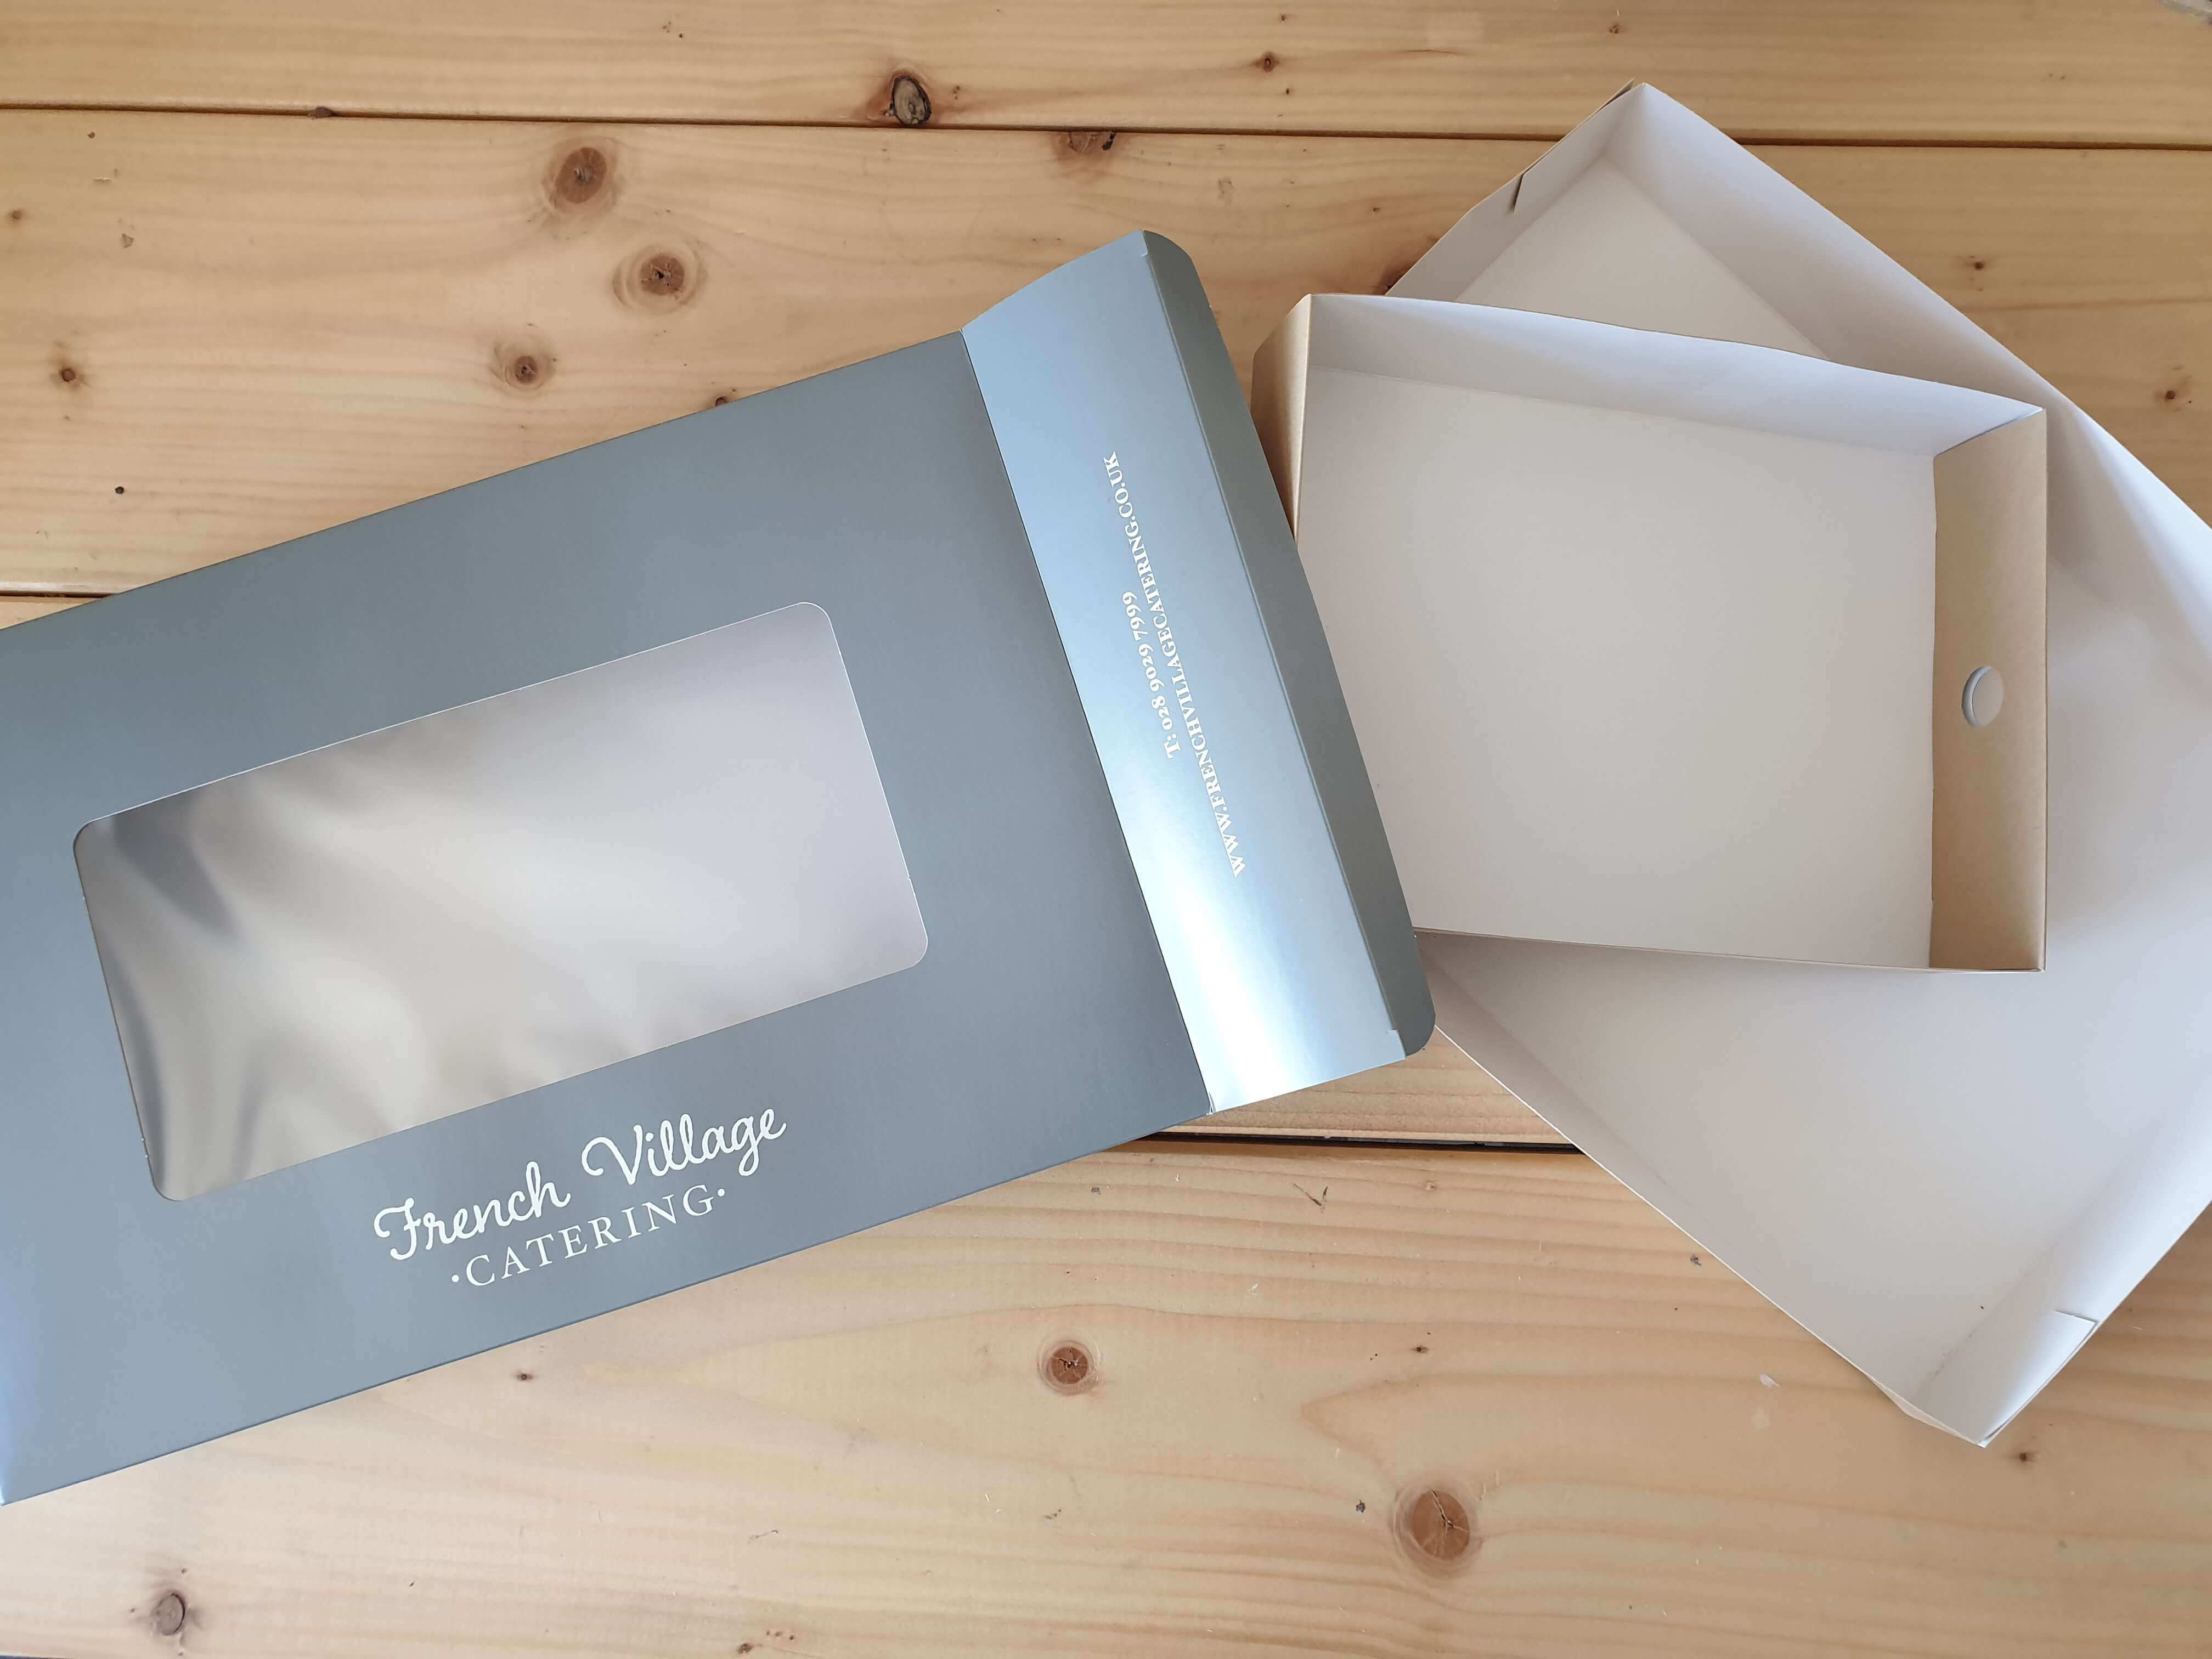 Branded Print Windowed Large Platter Box with Full Tray, Half Tray also available